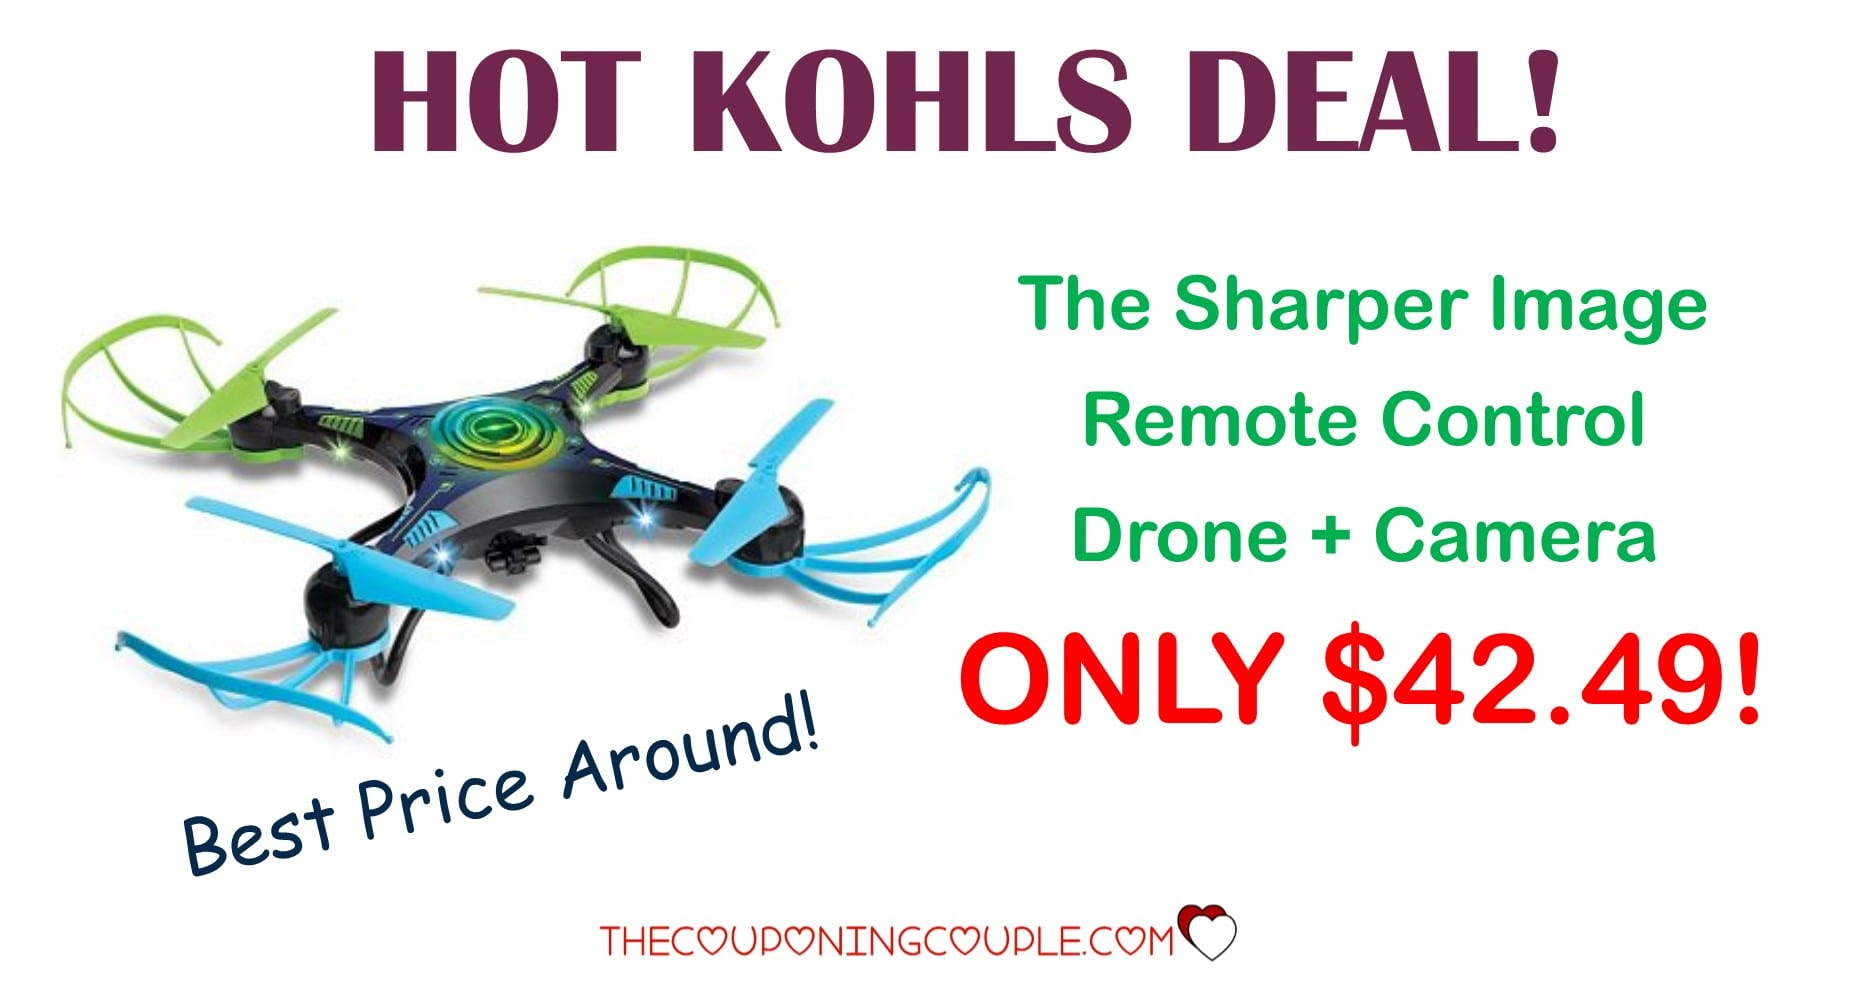 Sharper Image Remote Control Sky Drone Camera 4249 120 Value